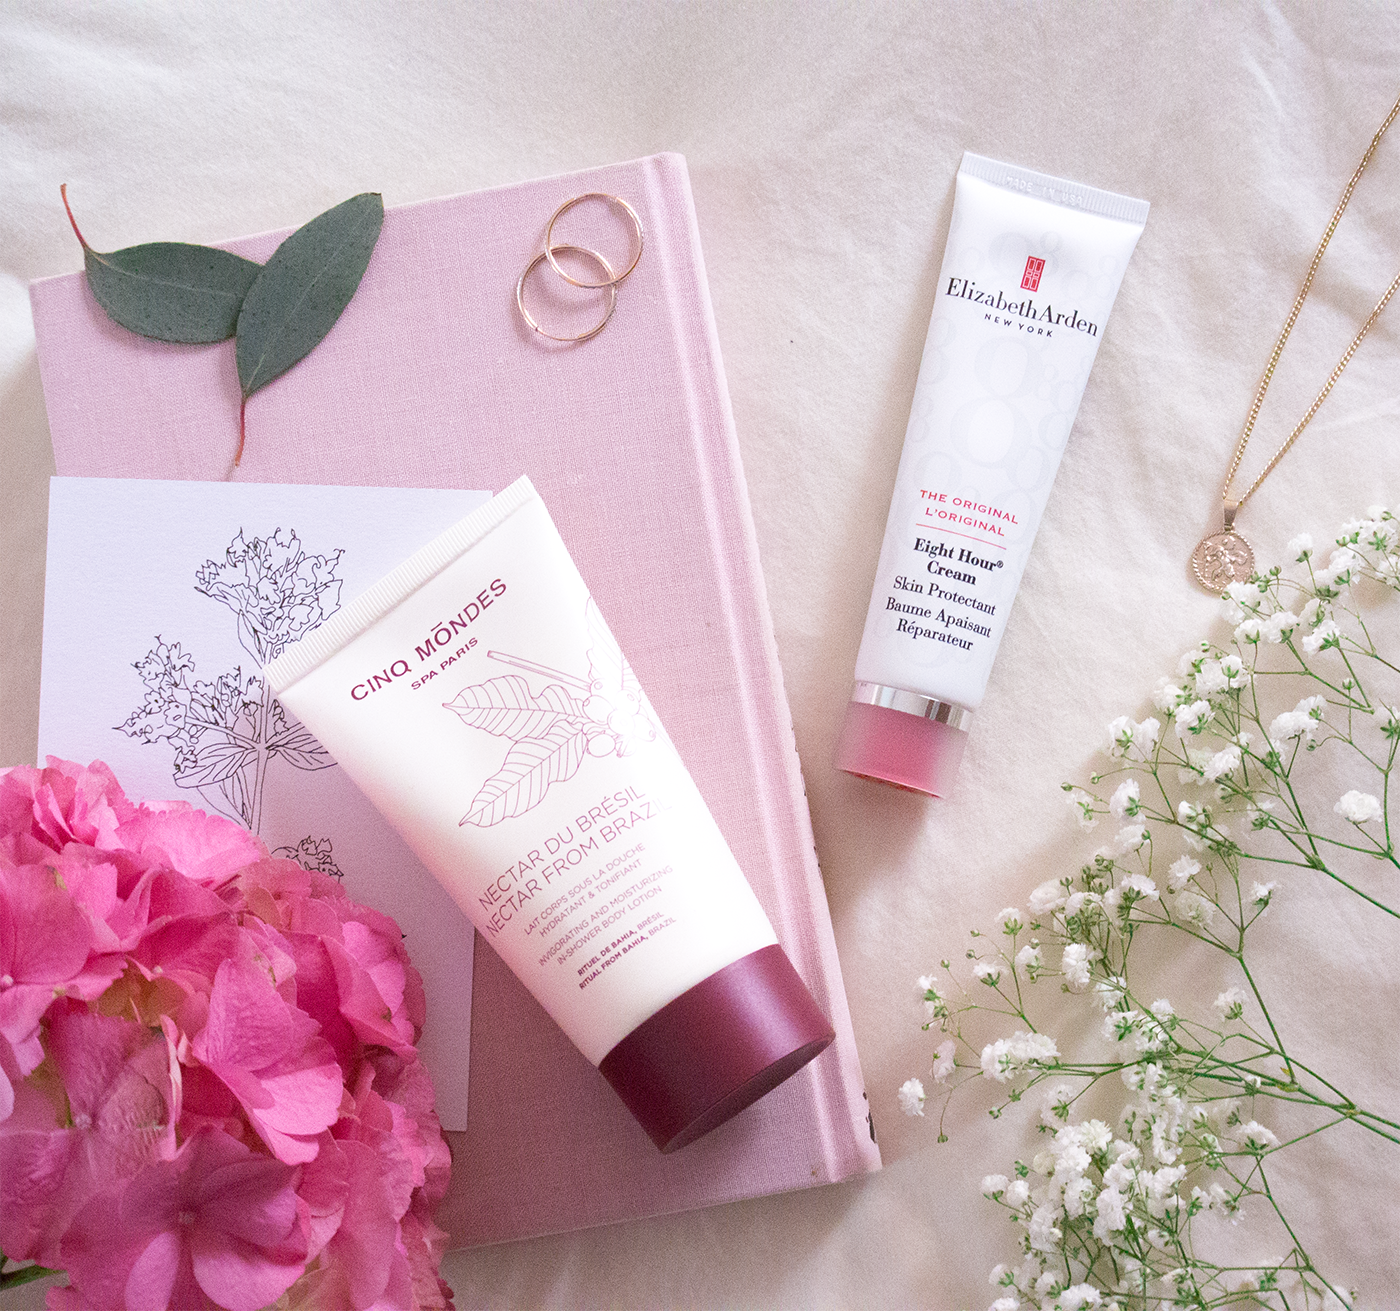 elisabeth arden 8 hour cream cinq mondes NECTAR FROM BRAZIL IN-SHOWER MOISTURIZER review